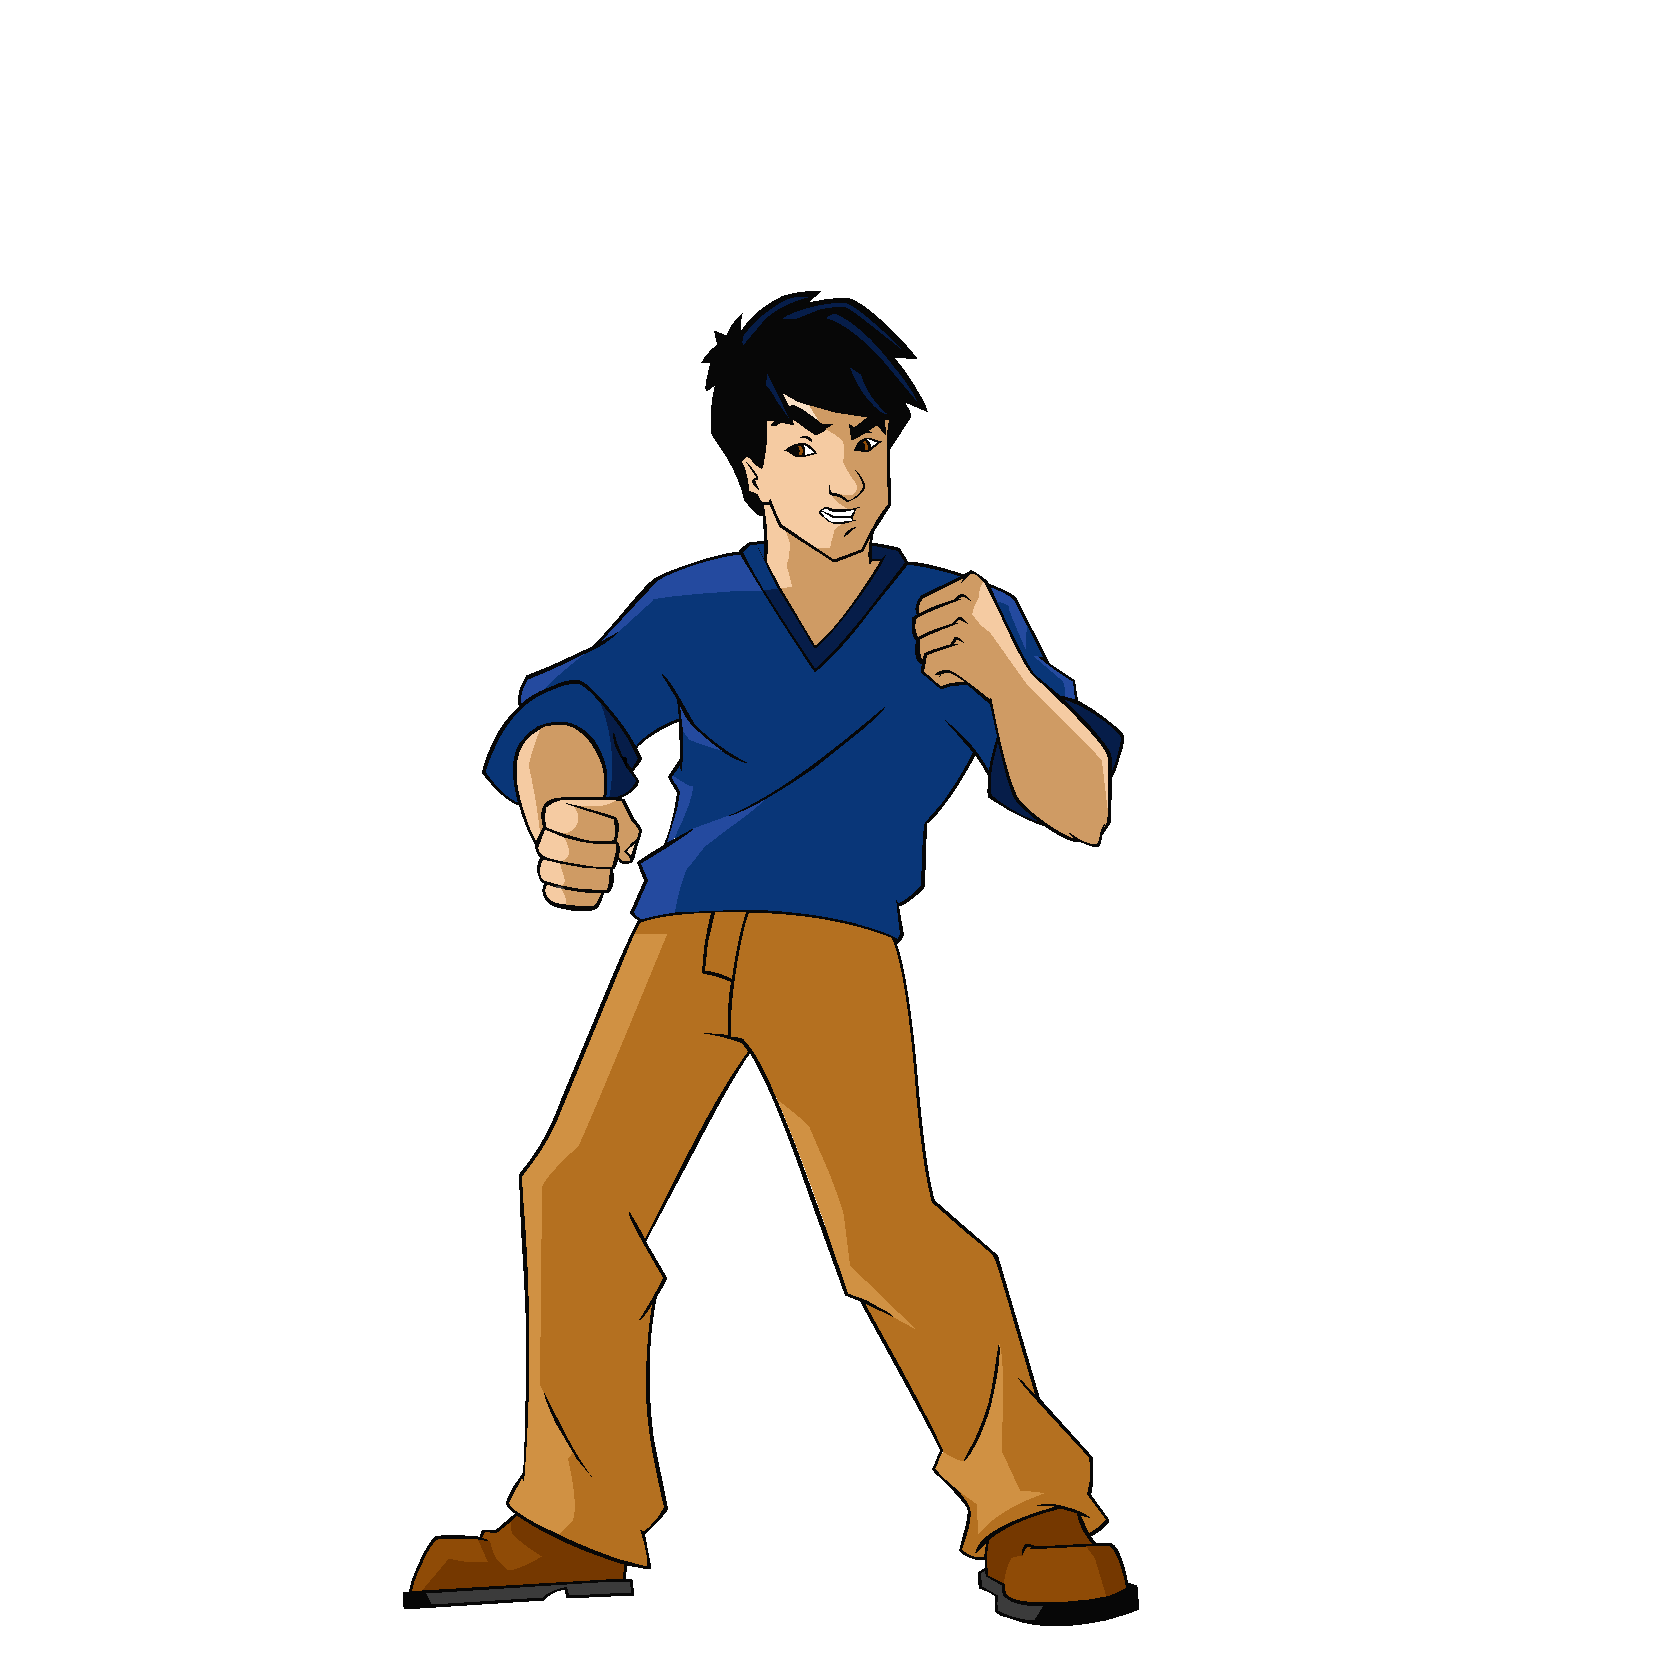 Image personnage png » PNG Image.